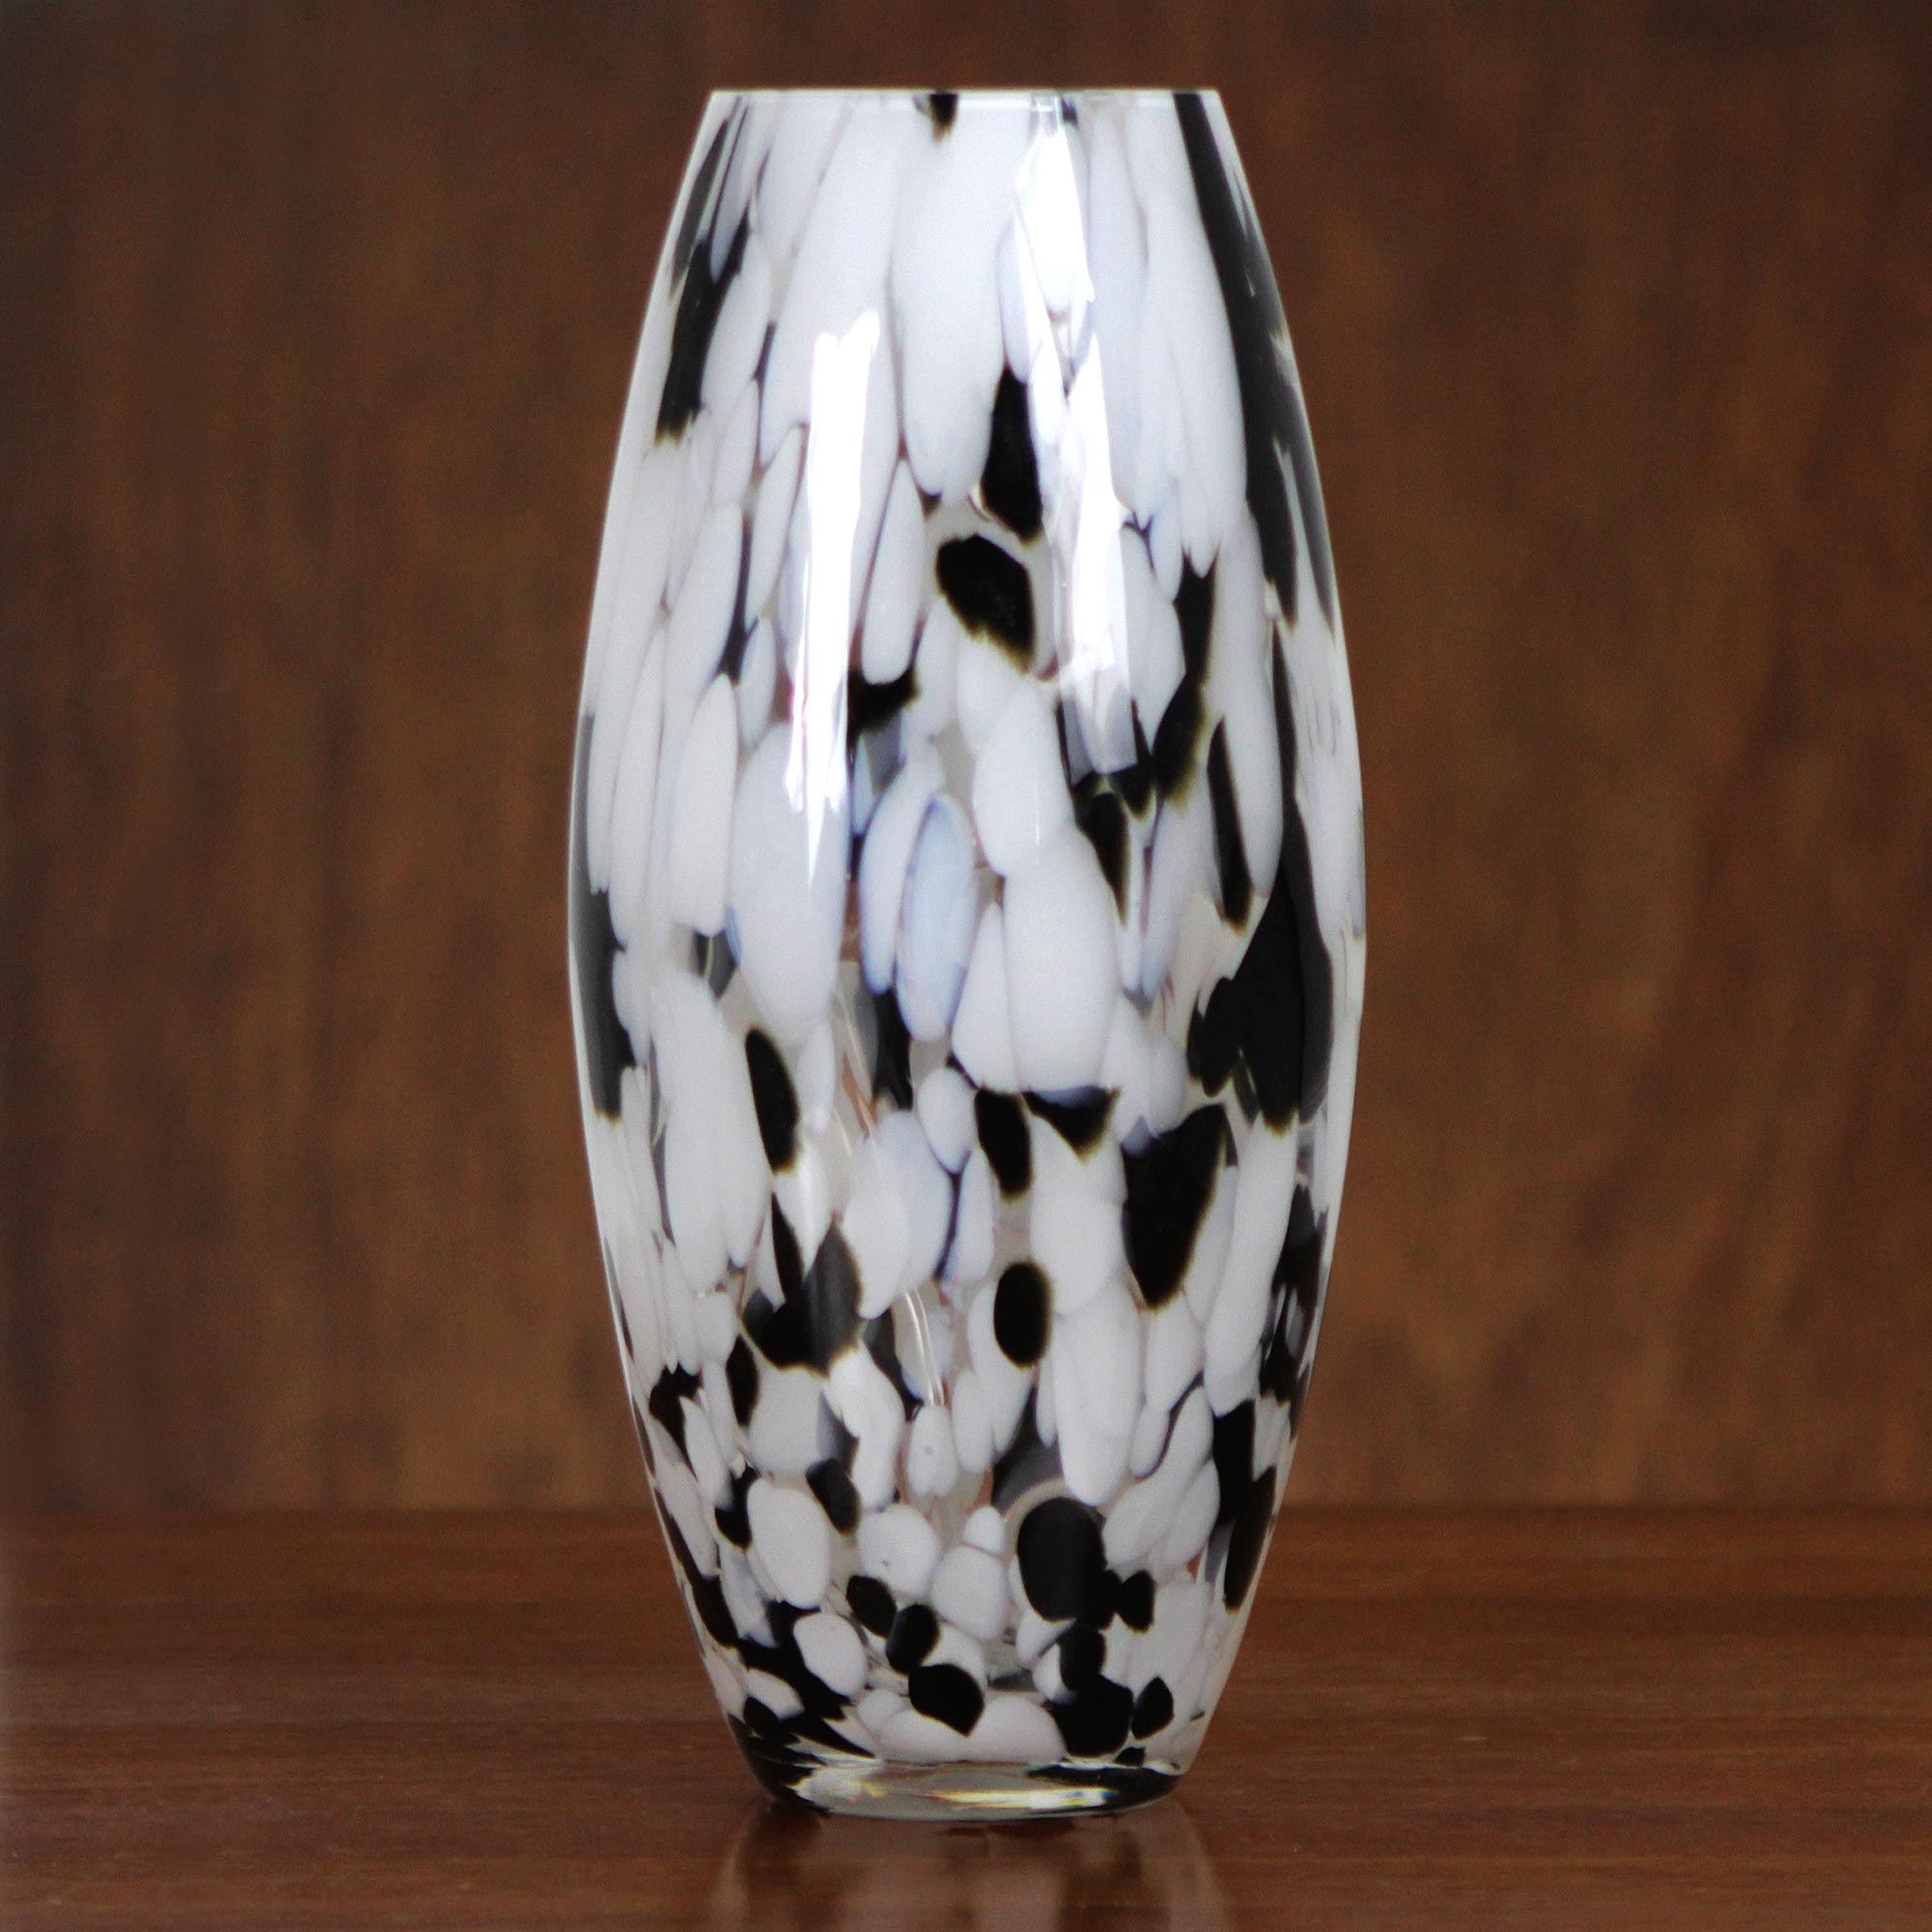 Elegant Drip Hand Blown Murano-Style Art Glass Vase in Black and White memorable gifts